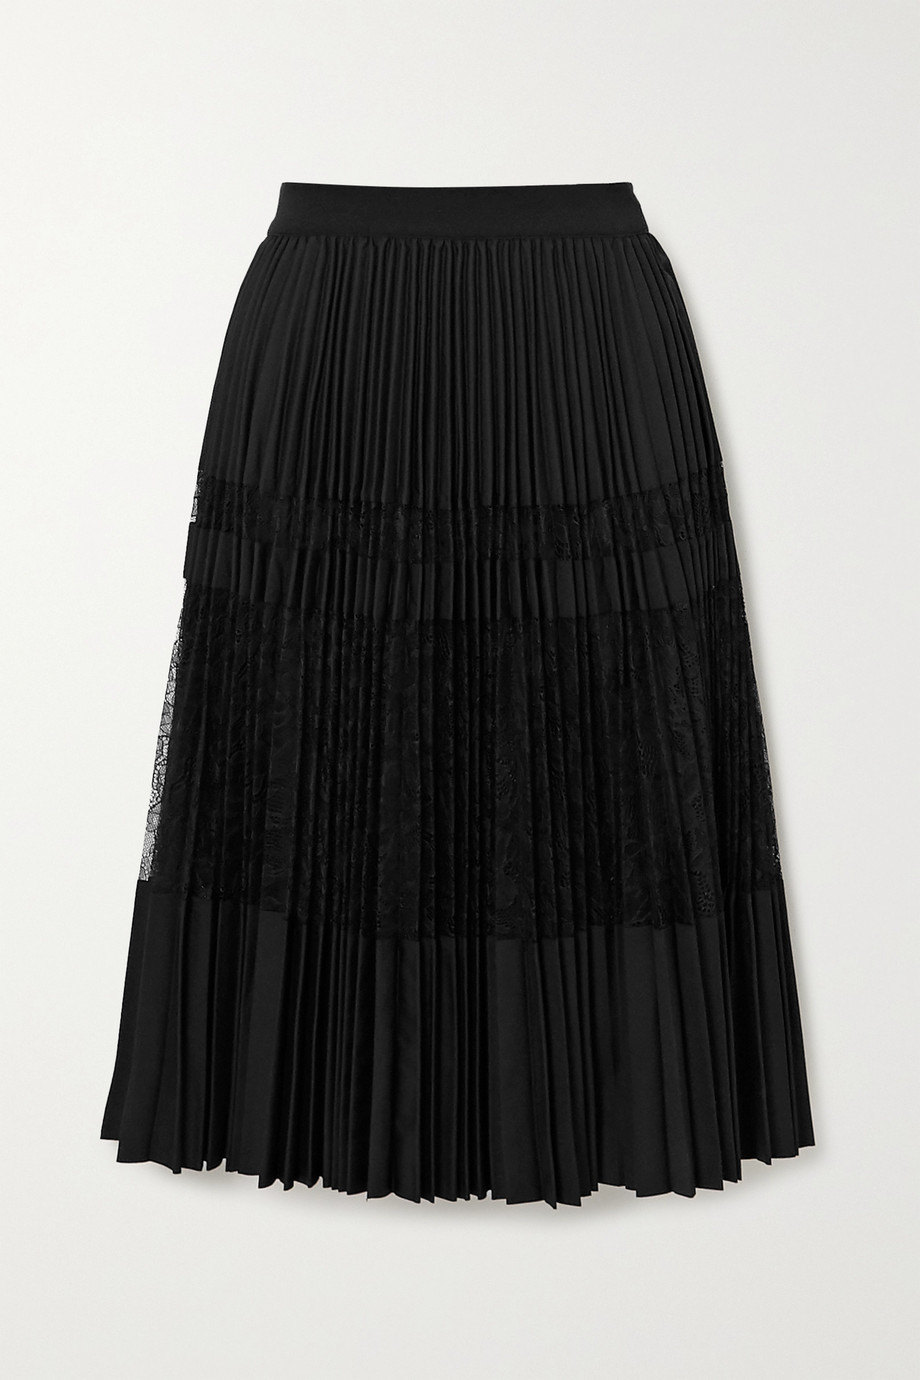 By Malene Birger Dax pleated lace midi skirt